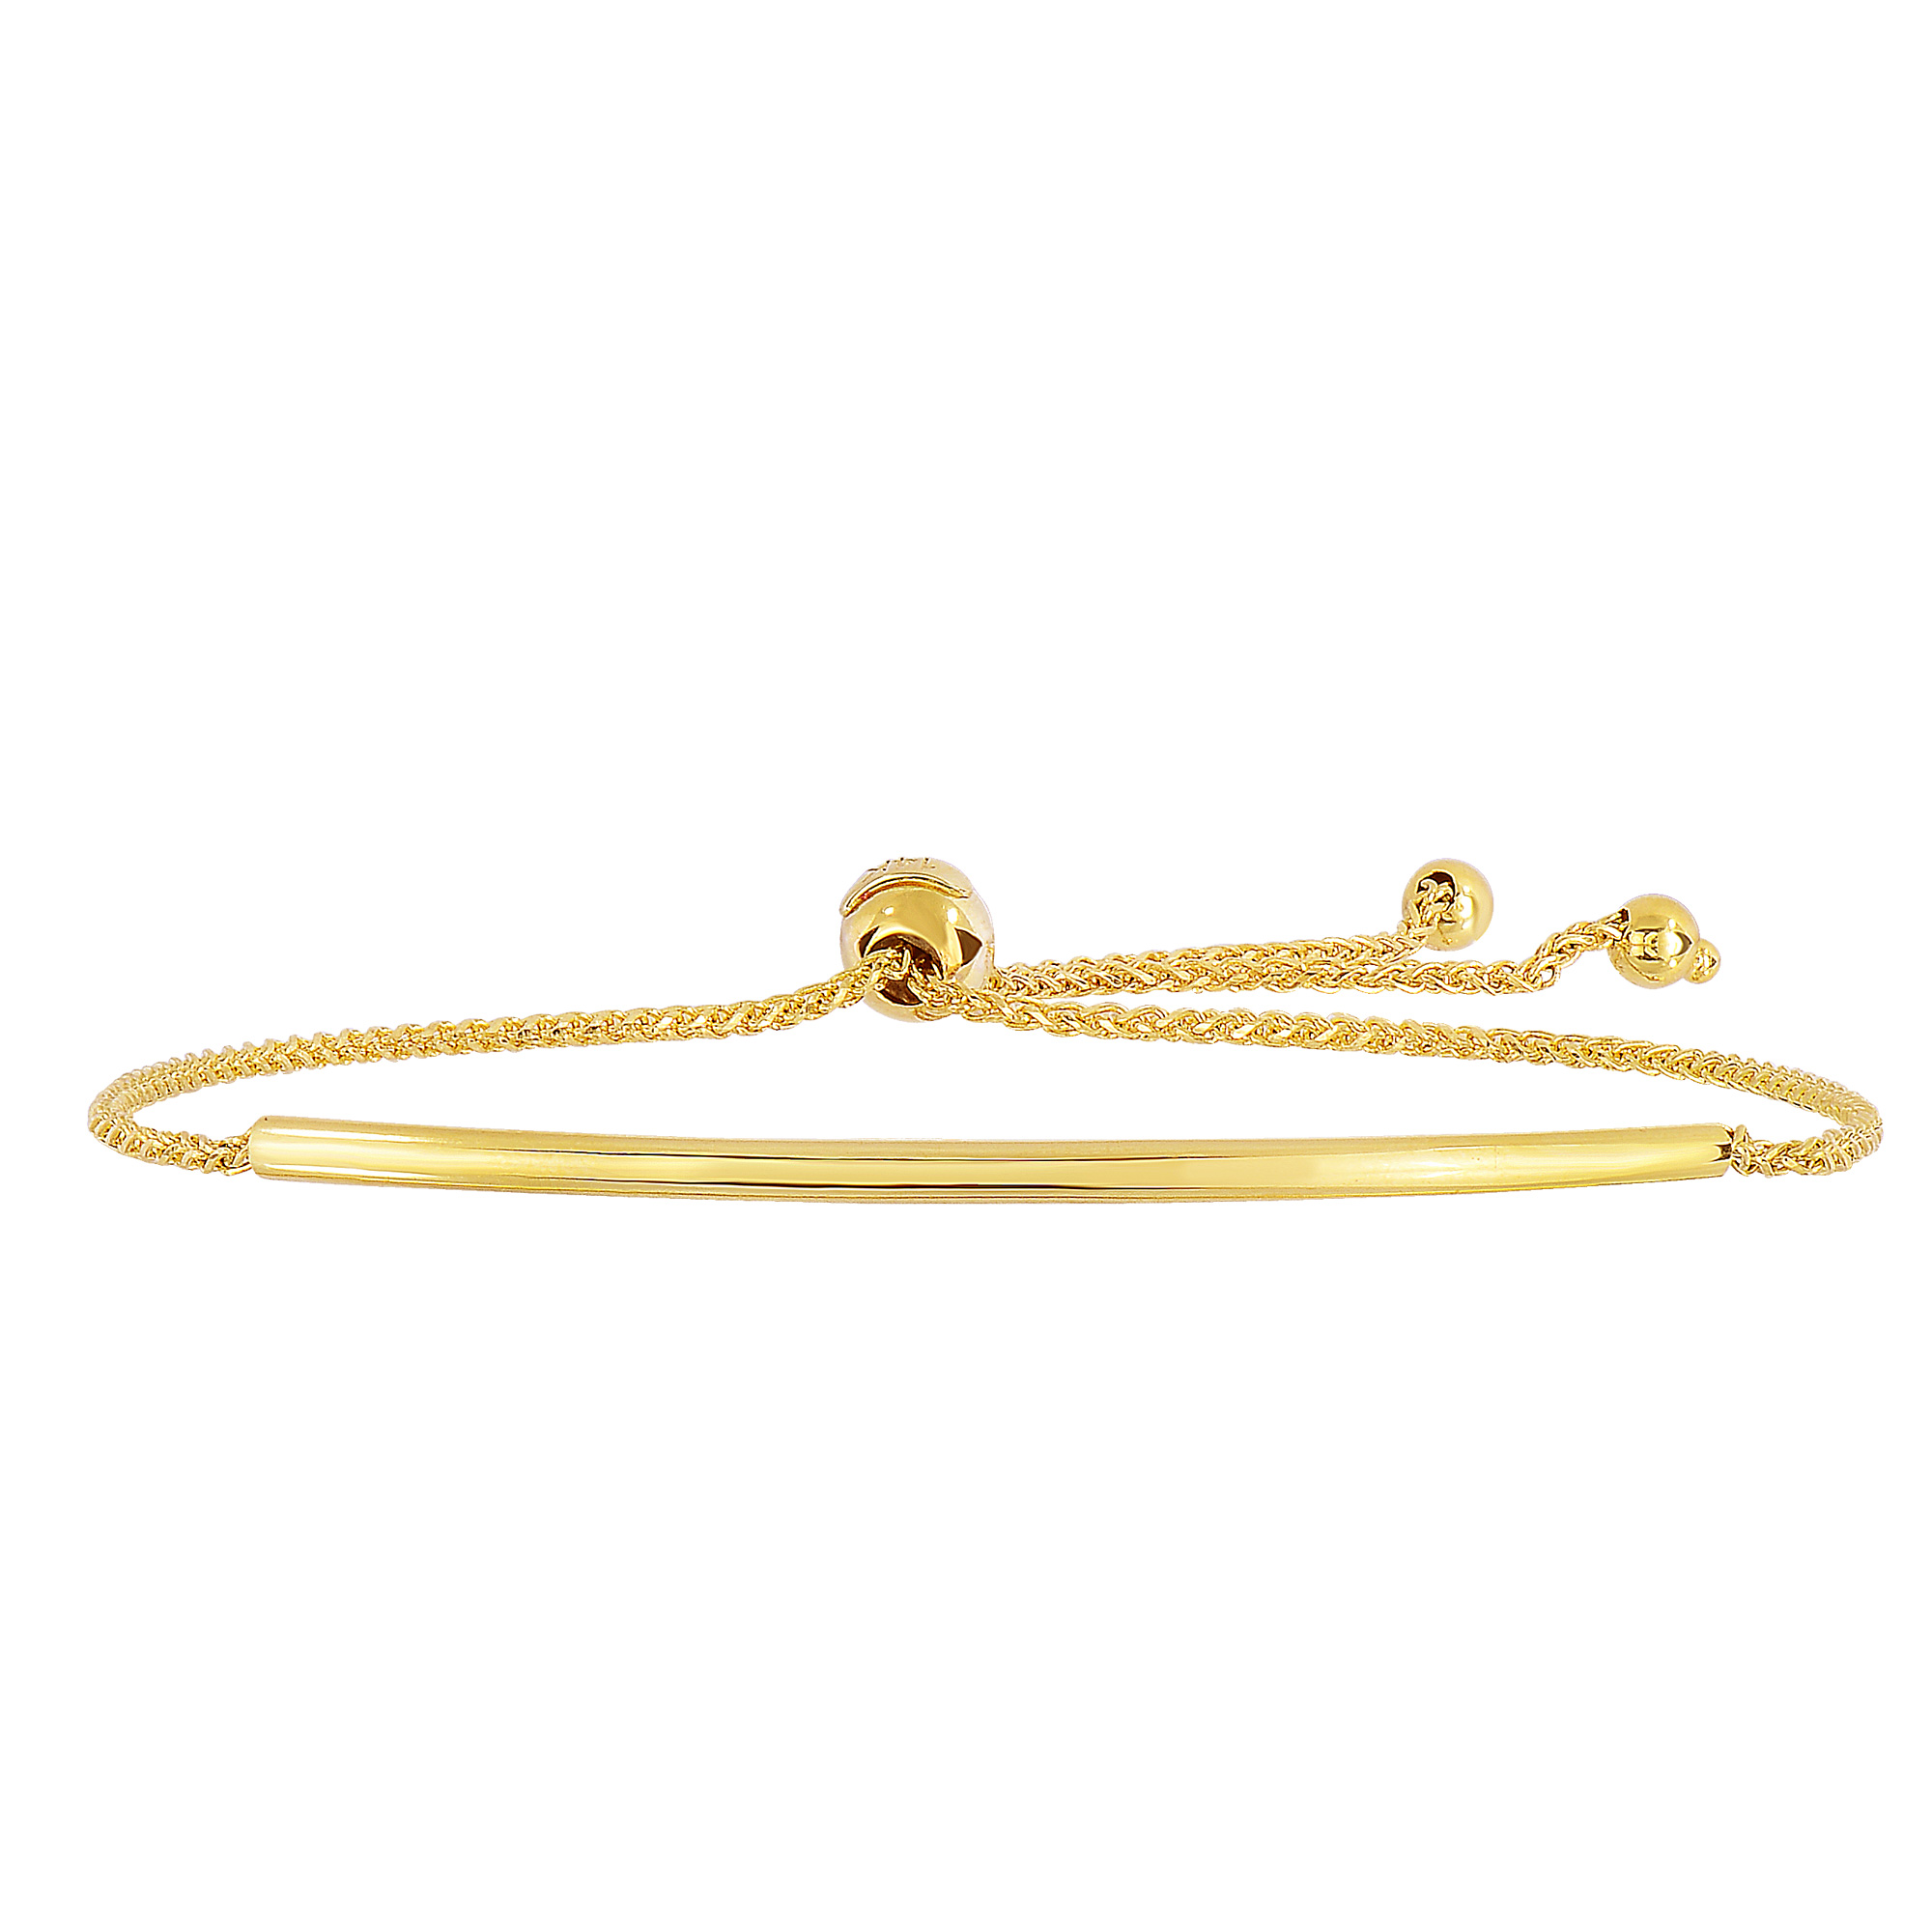 14K Yellow Gold Curve Bar Diamond Cut Wheat Chain Adjustable Bracelet With Adjustable Ball Clasp, 9.25″